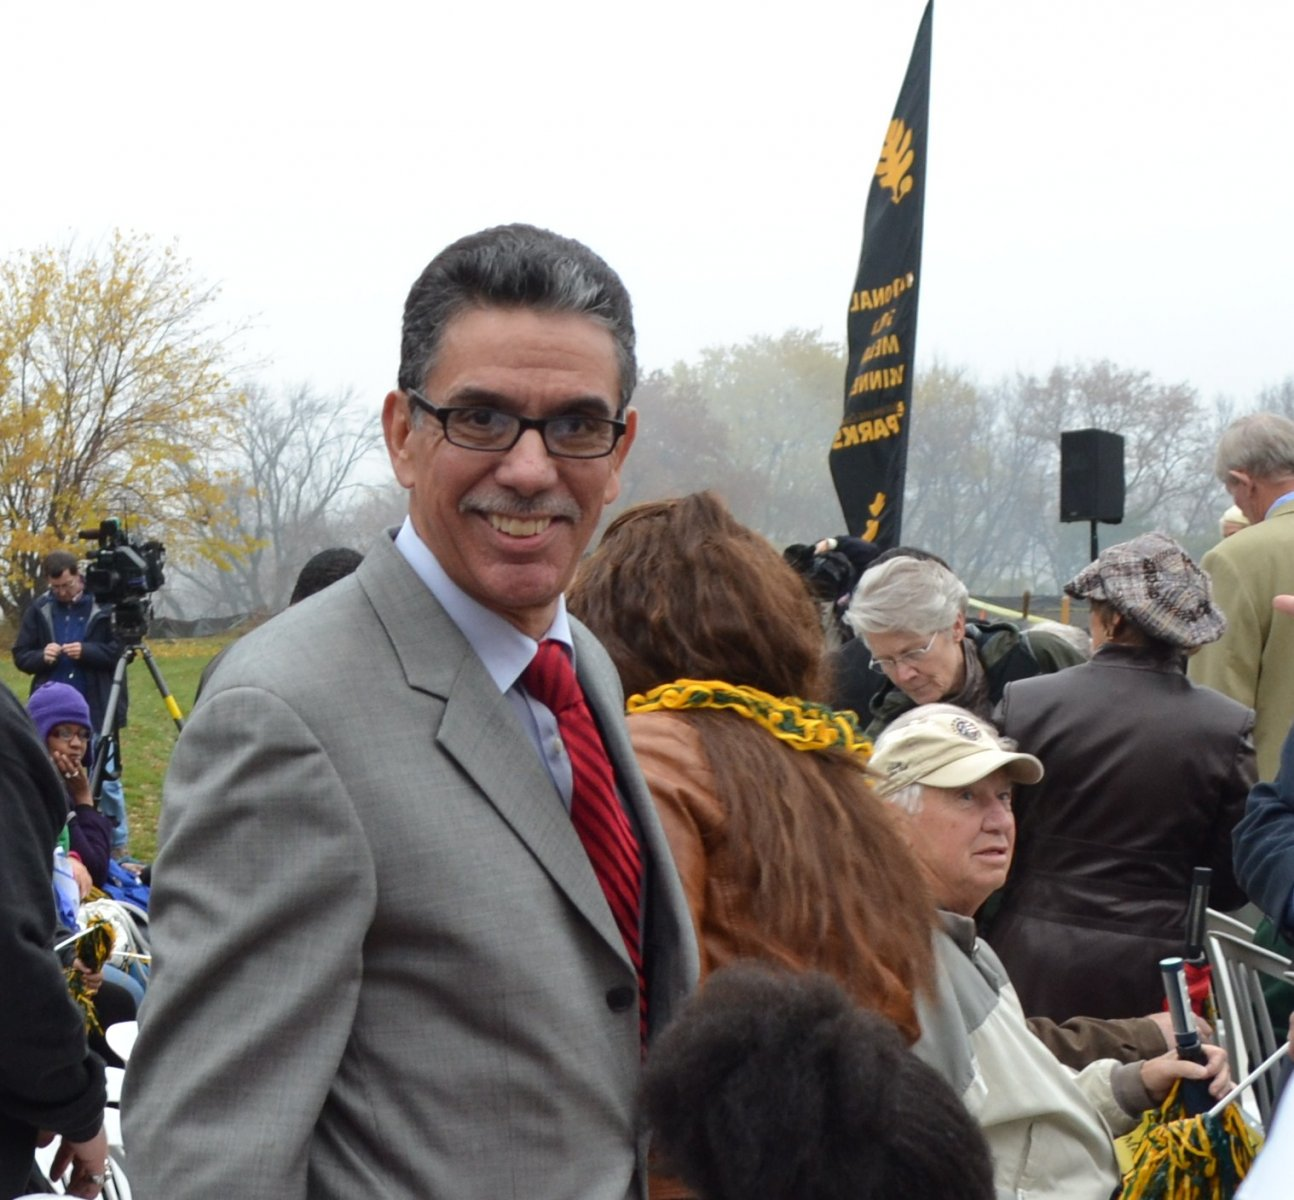 United Community Center executive director Diaz goes 'On the Issues' at Marquette Law School